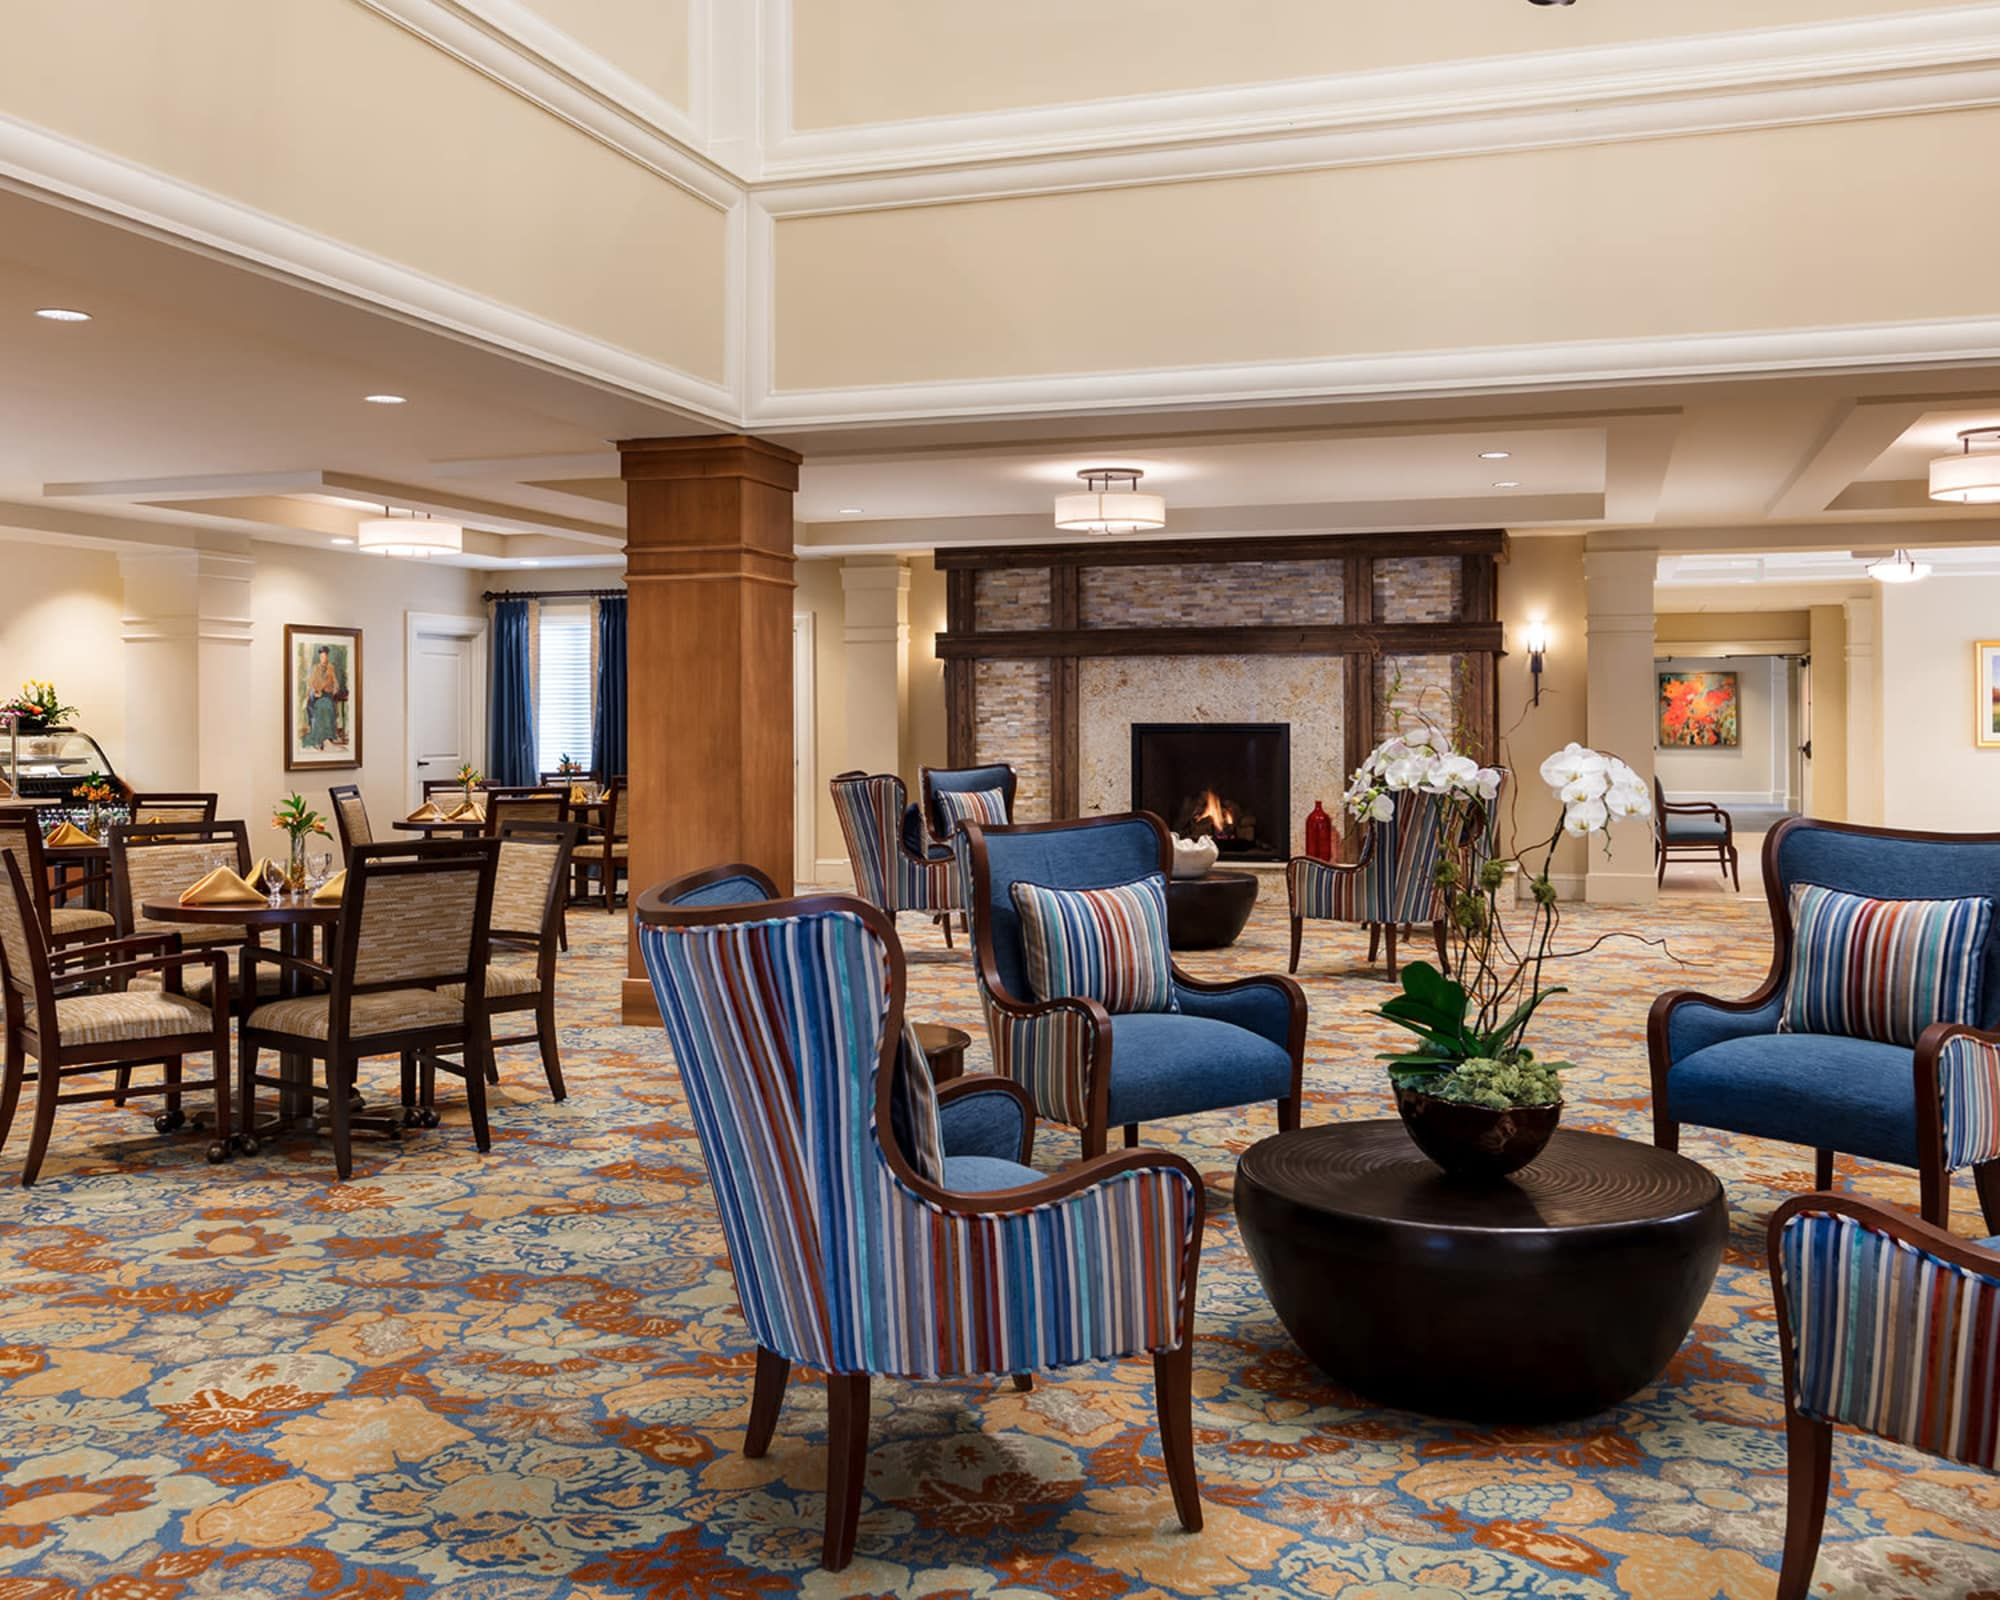 Exquisite senior living facility located in Long Grove